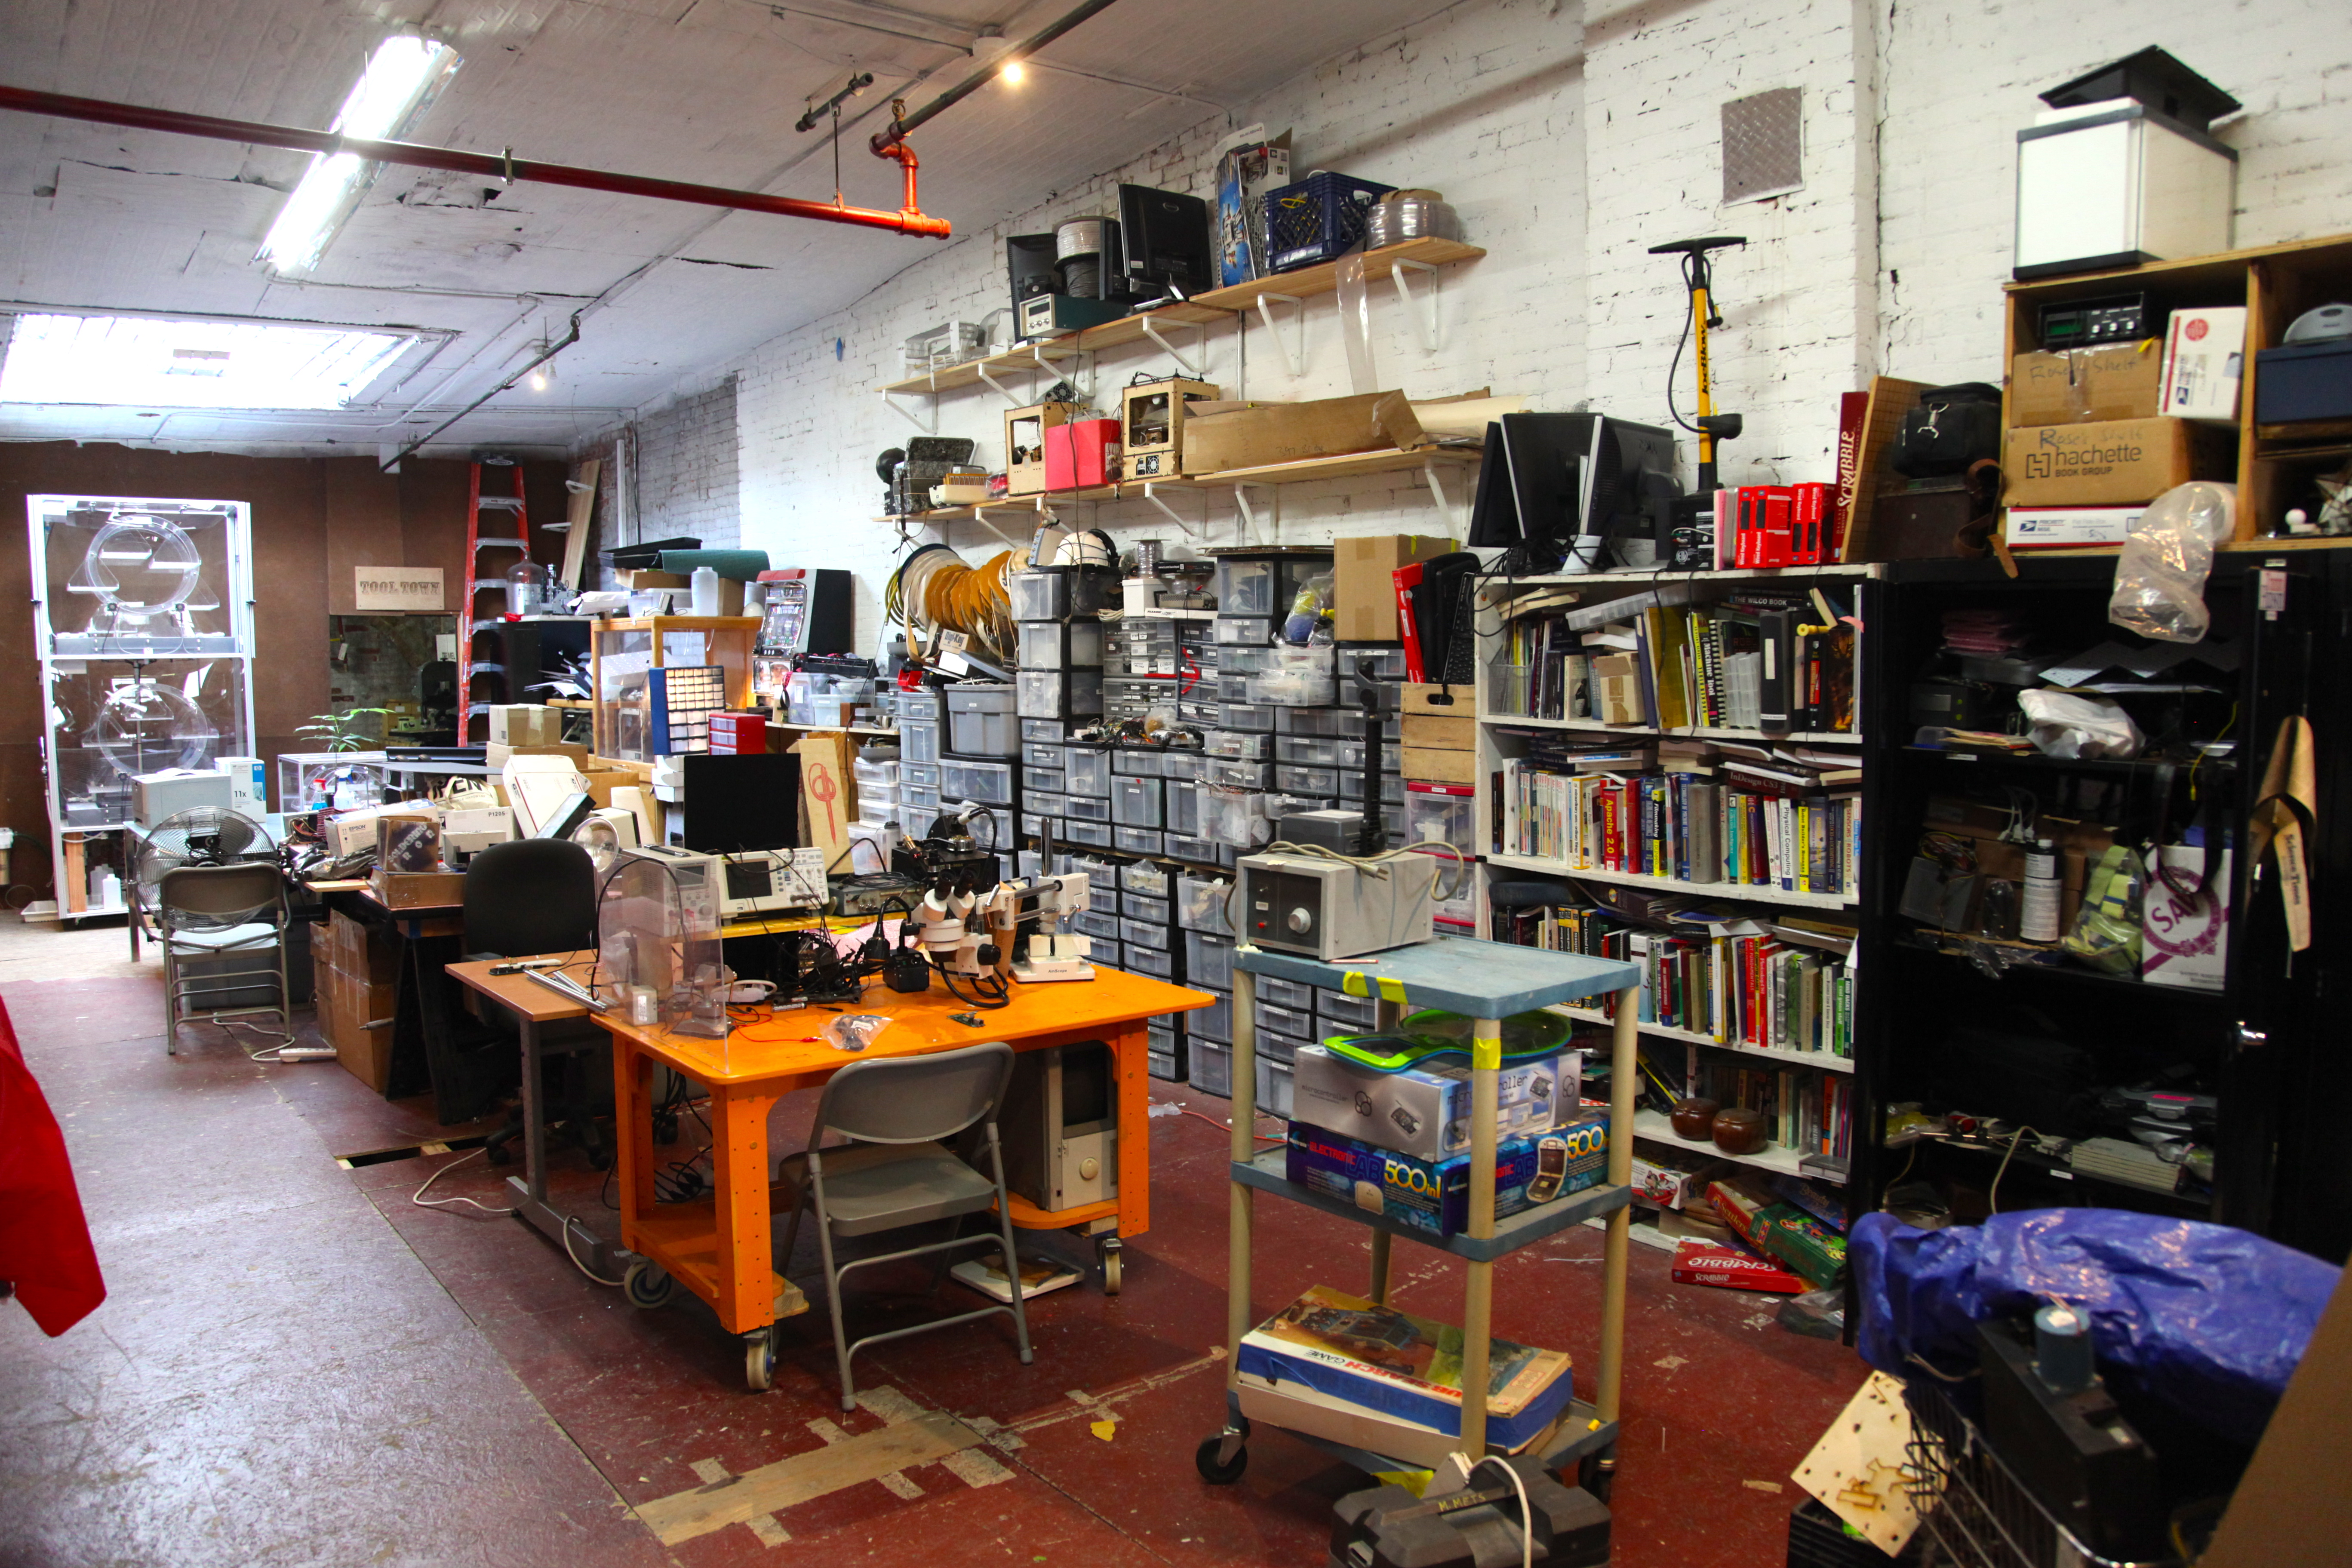 NYC Resistor's back room. Photo by Signe Brewster.